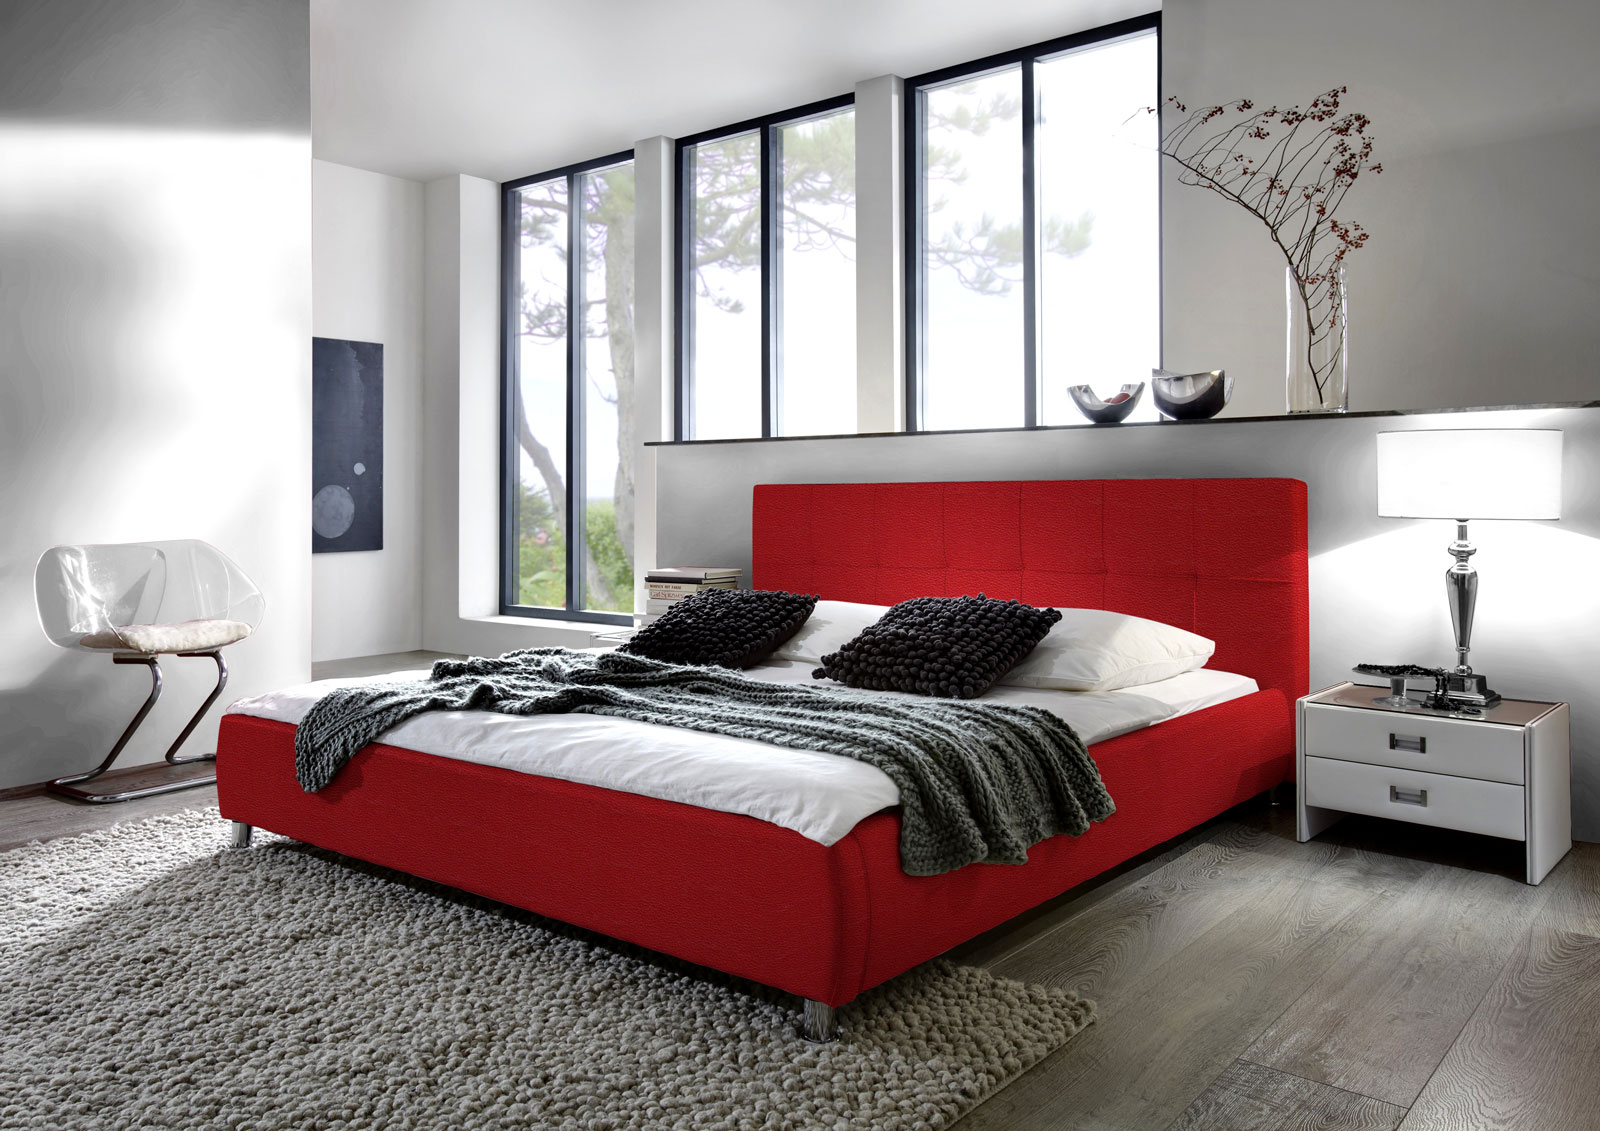 sam polsterbett 180x200 cm rot bettgestell g nstig zarah demn chst. Black Bedroom Furniture Sets. Home Design Ideas